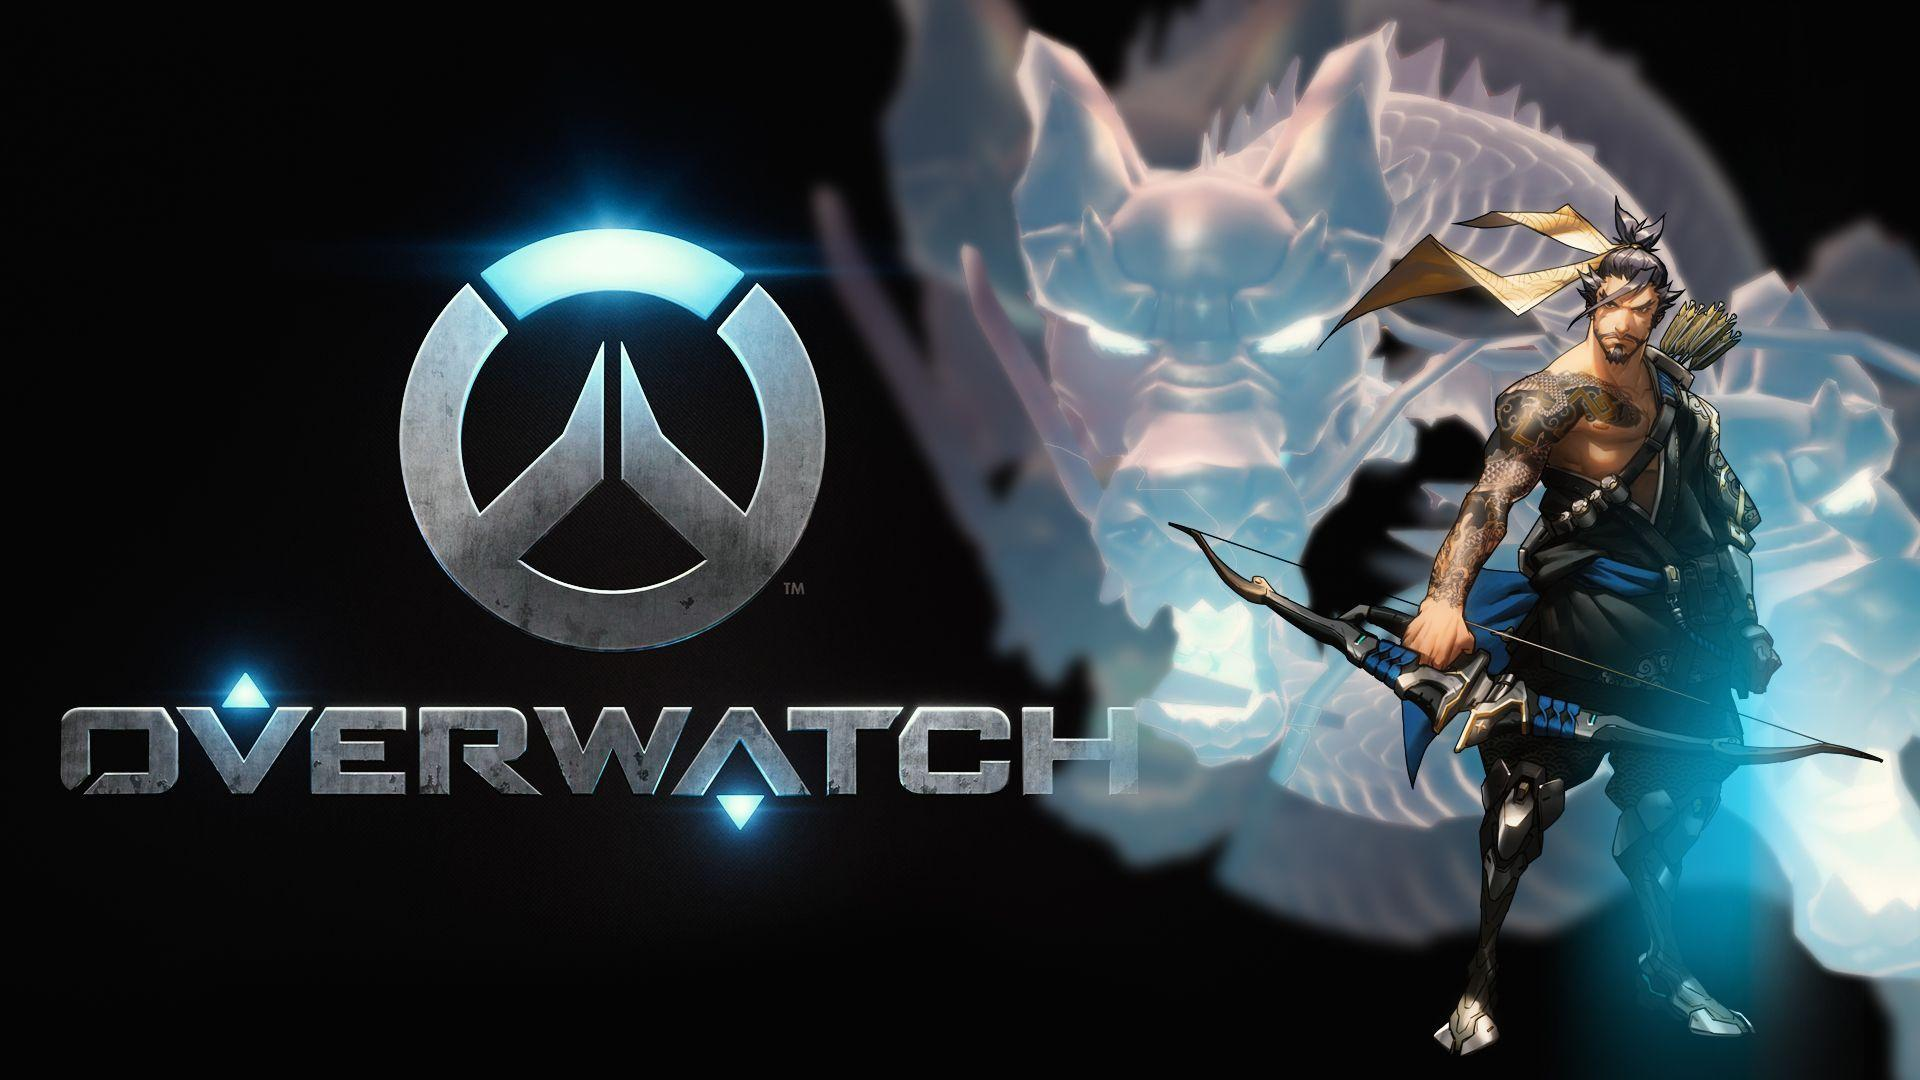 Overwatch Wallpaper 1080p Download Free Cool High: [Download] 40+ Latest Overwatch Wallpaper Collections In HD